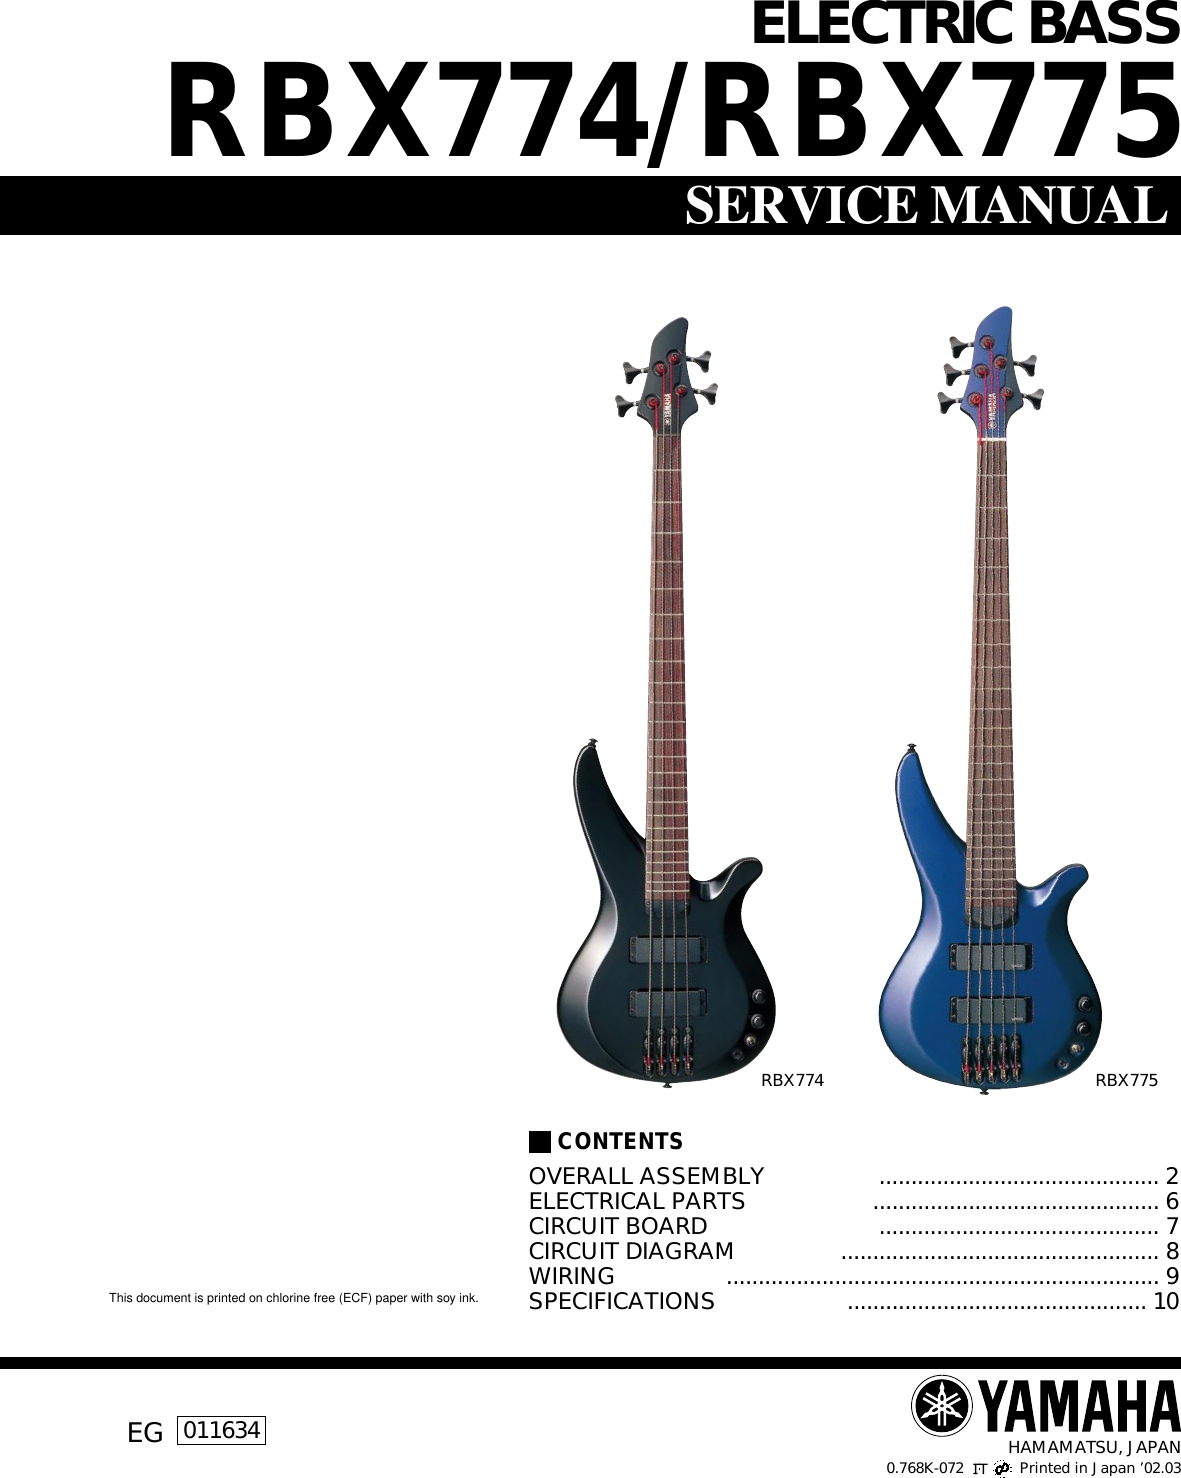 Yamaha Guitar Electric Bass Users Manual Wiring Schematic